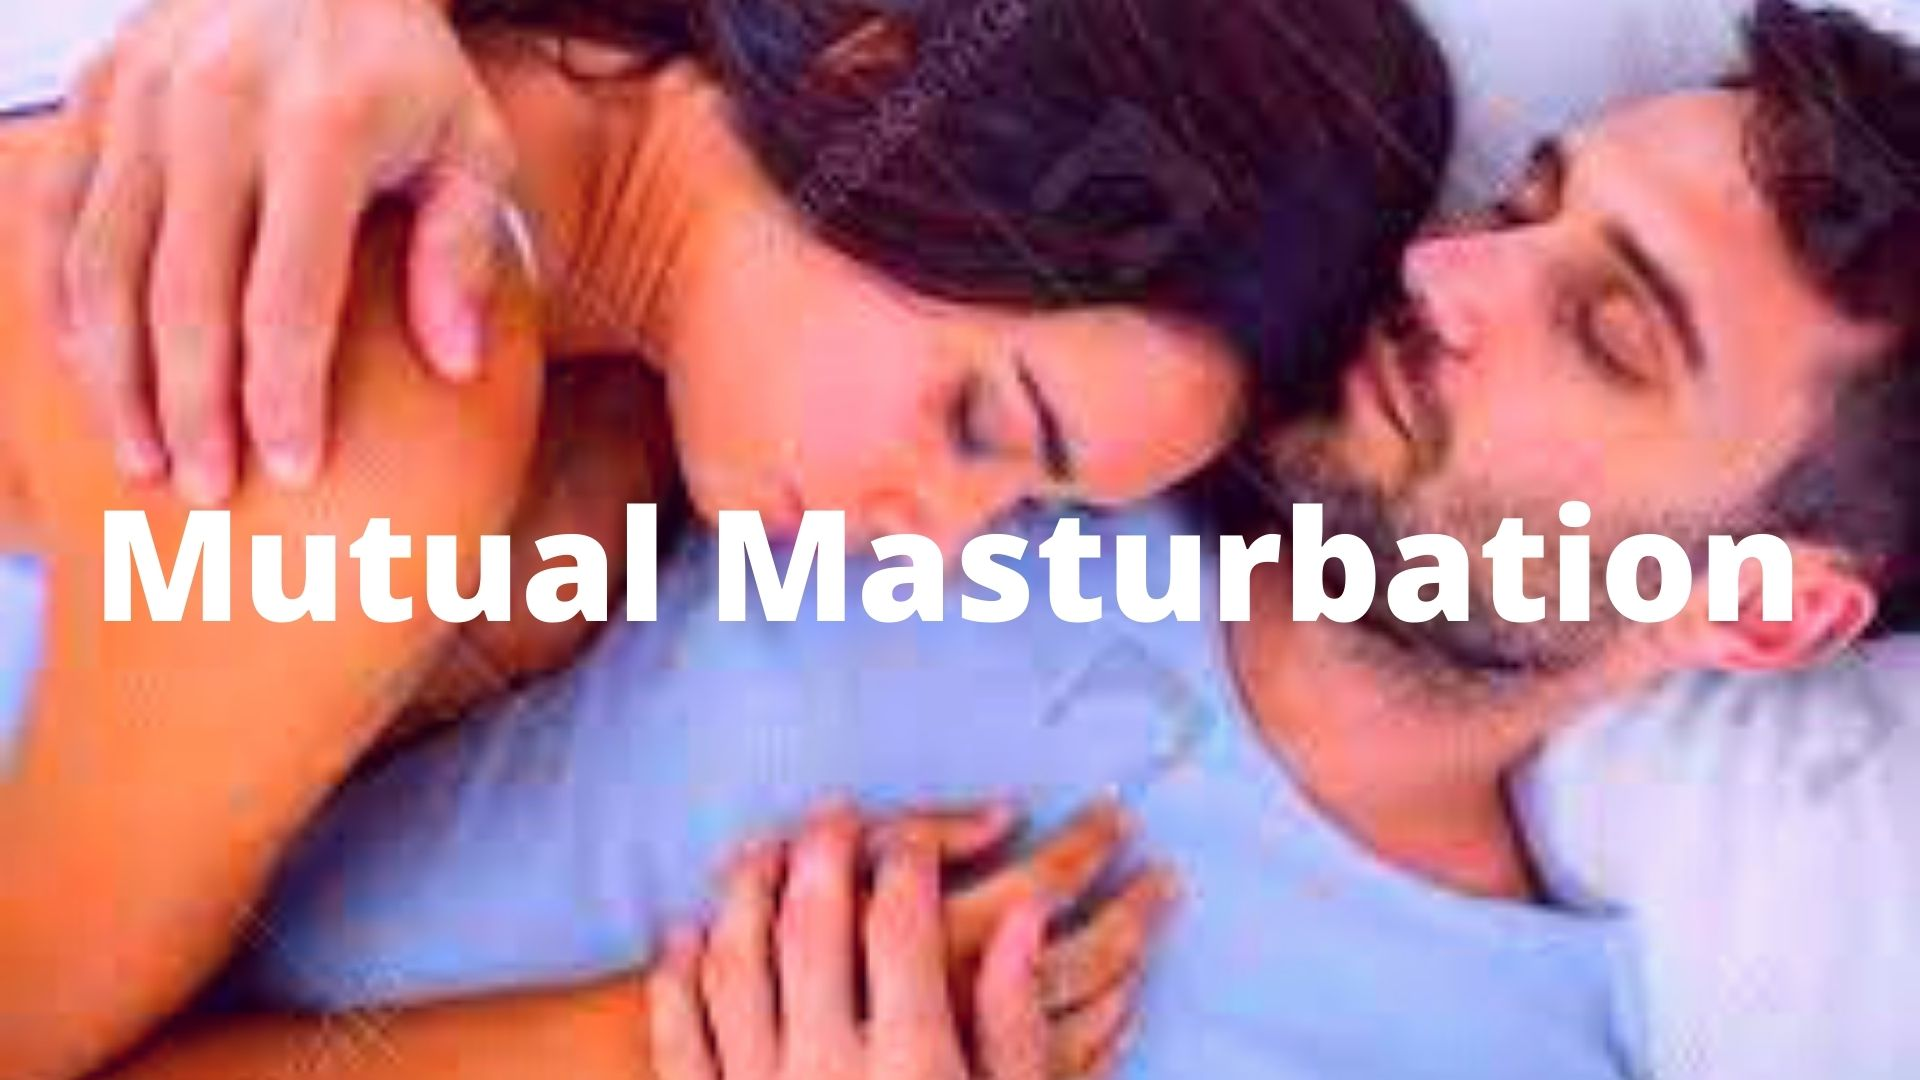 What Is Meant By Mutual Masturbation?